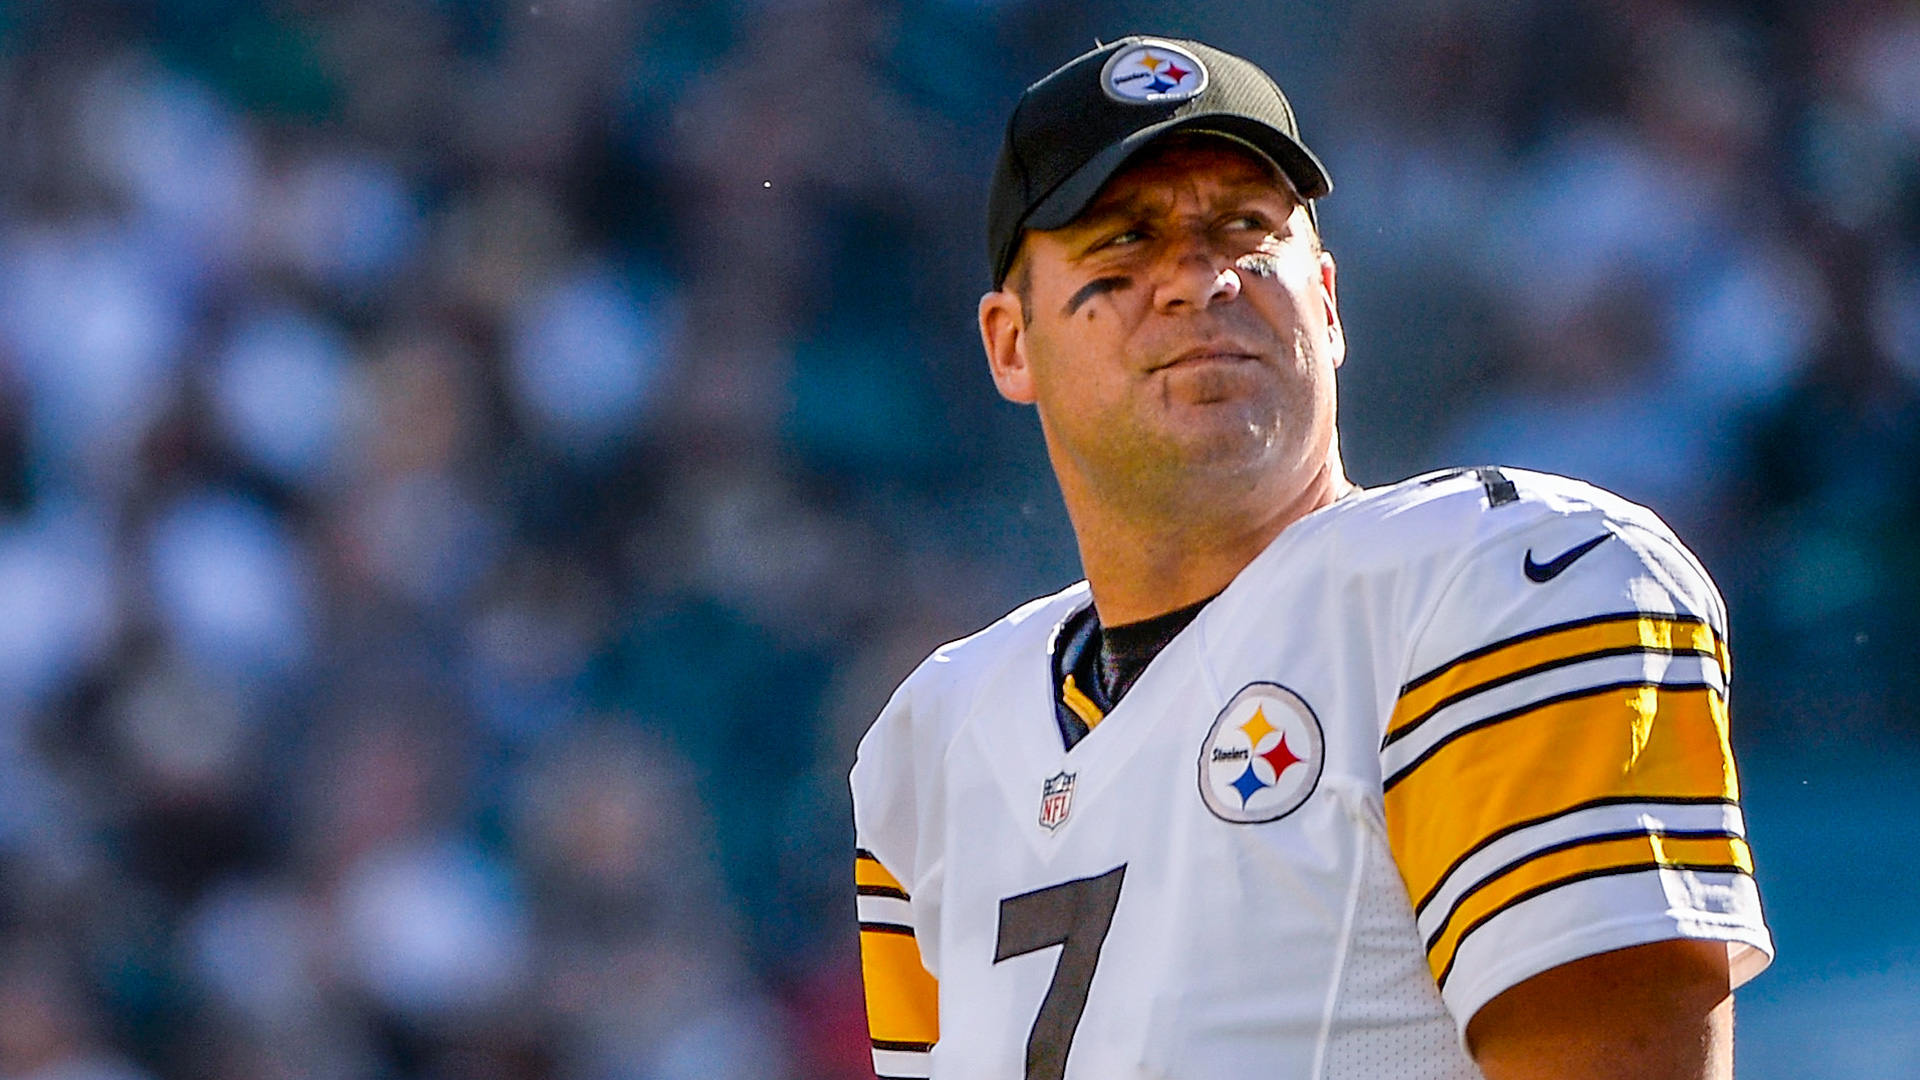 Get this straight Ben Roethlisberger insists he still is one of